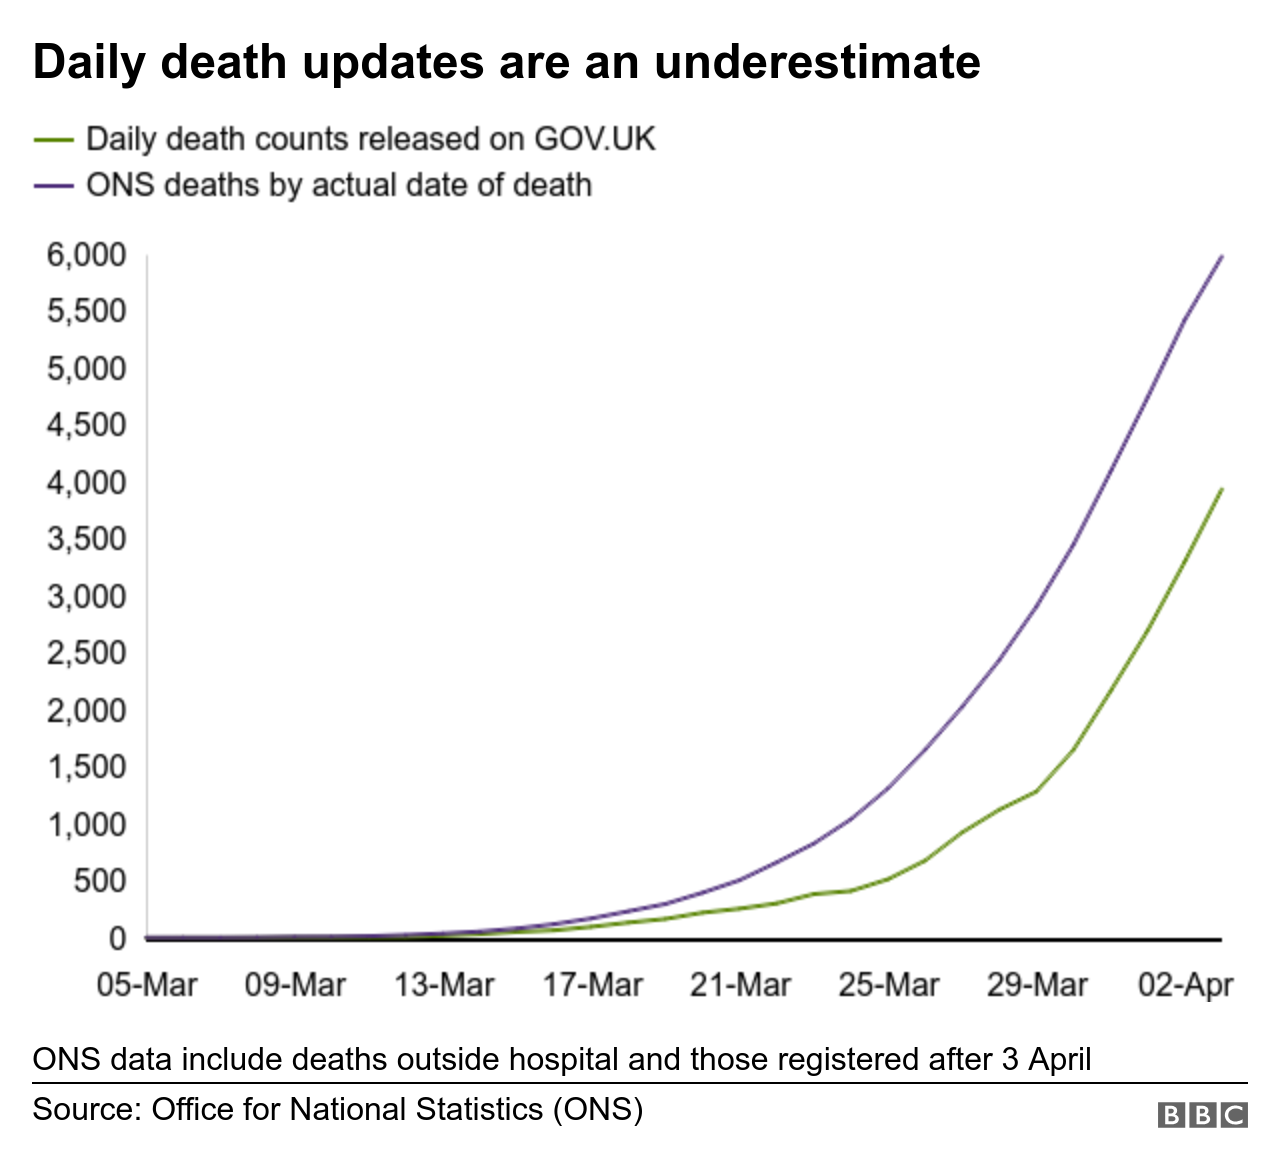 daily death updates are an underestimate since they exclude deaths outside hospital and are subject to reporting delays